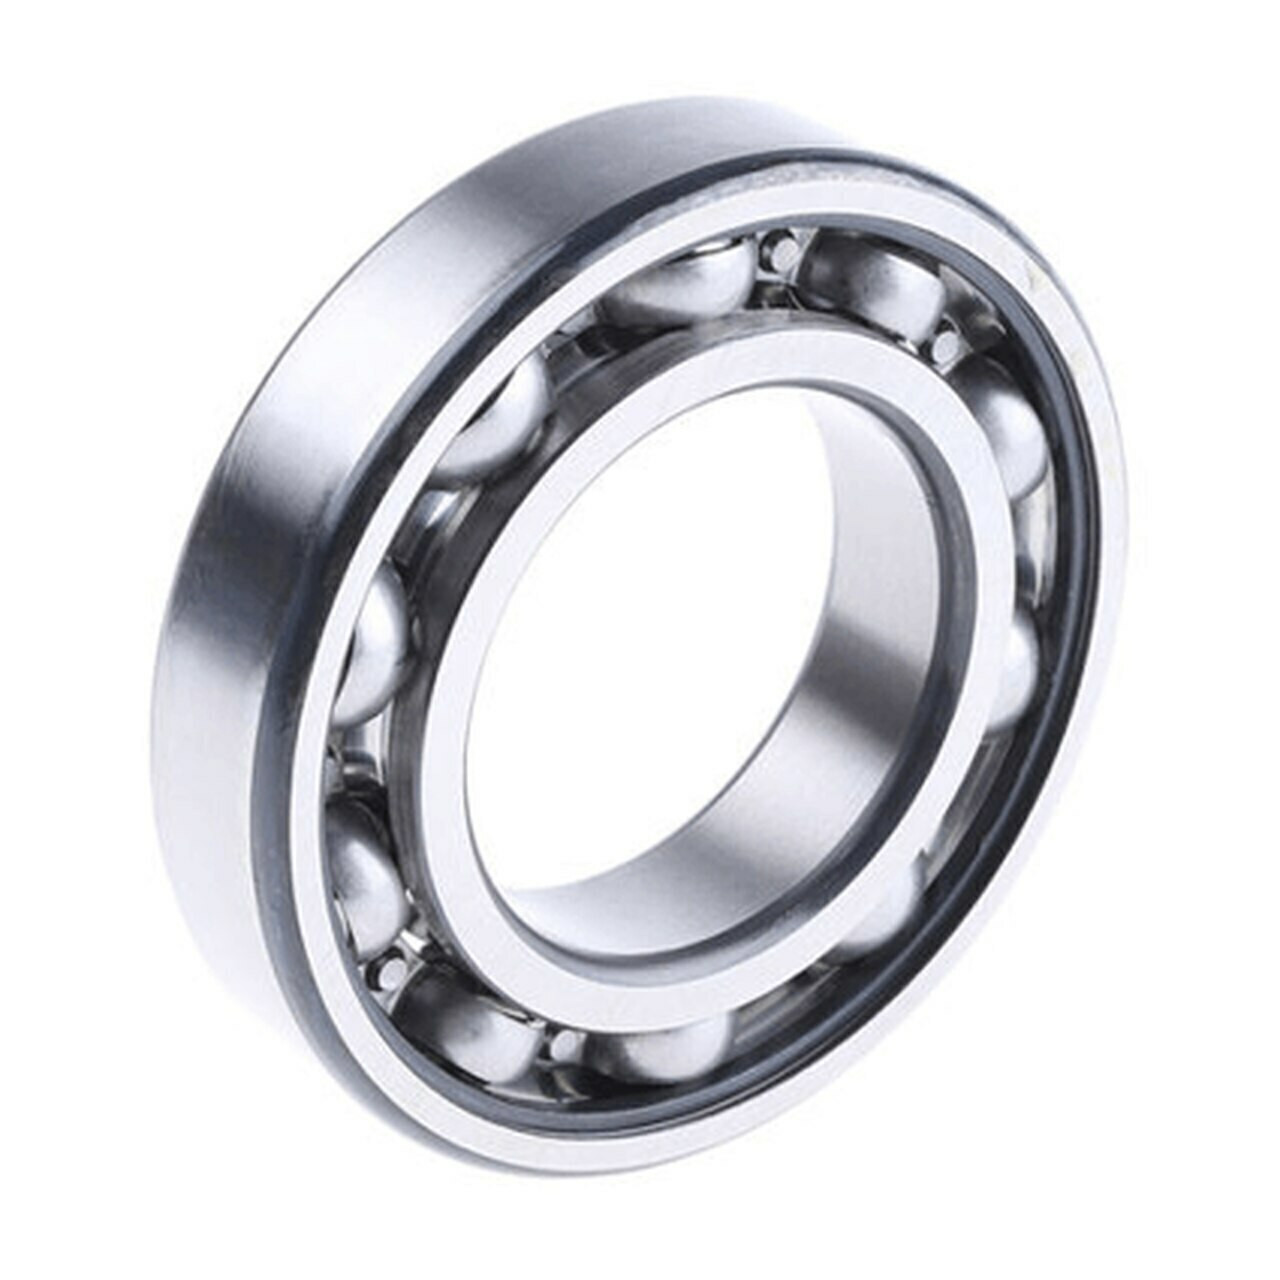 Cylinder Bearings for SYH-12XX, SH-13XX, SD-13XX Series